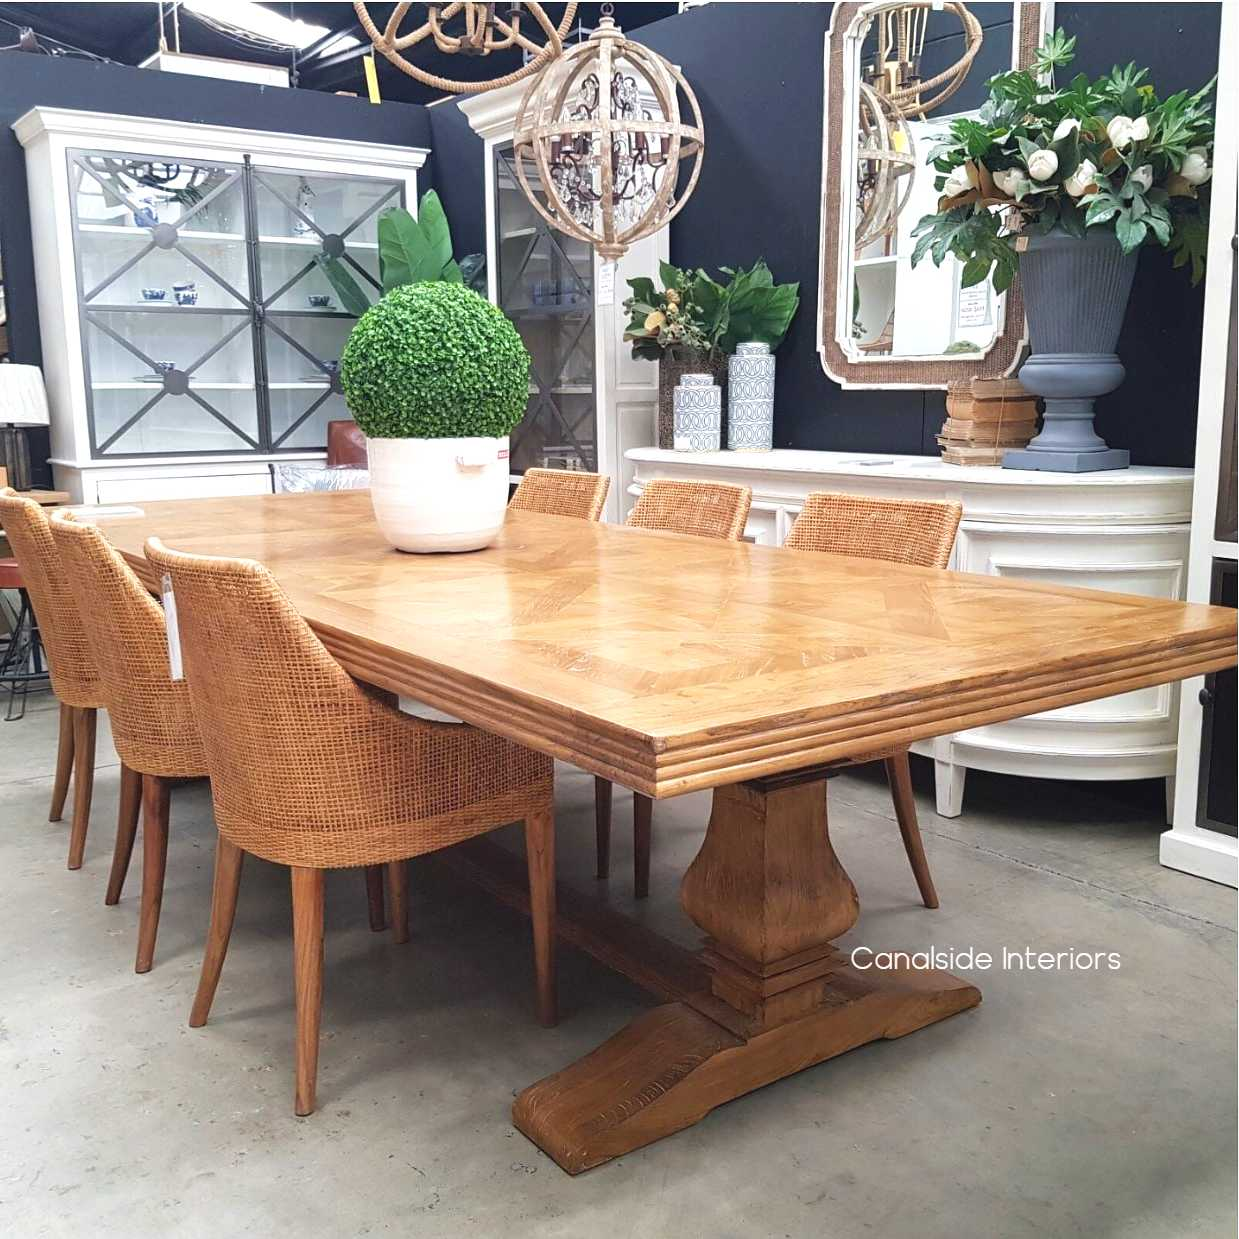 Wickham Dining Chairs Natural  CHAIRS, HAMPTONS Style, PLANTATION Style, CHAIRS Dining, PLANTATION STYLE